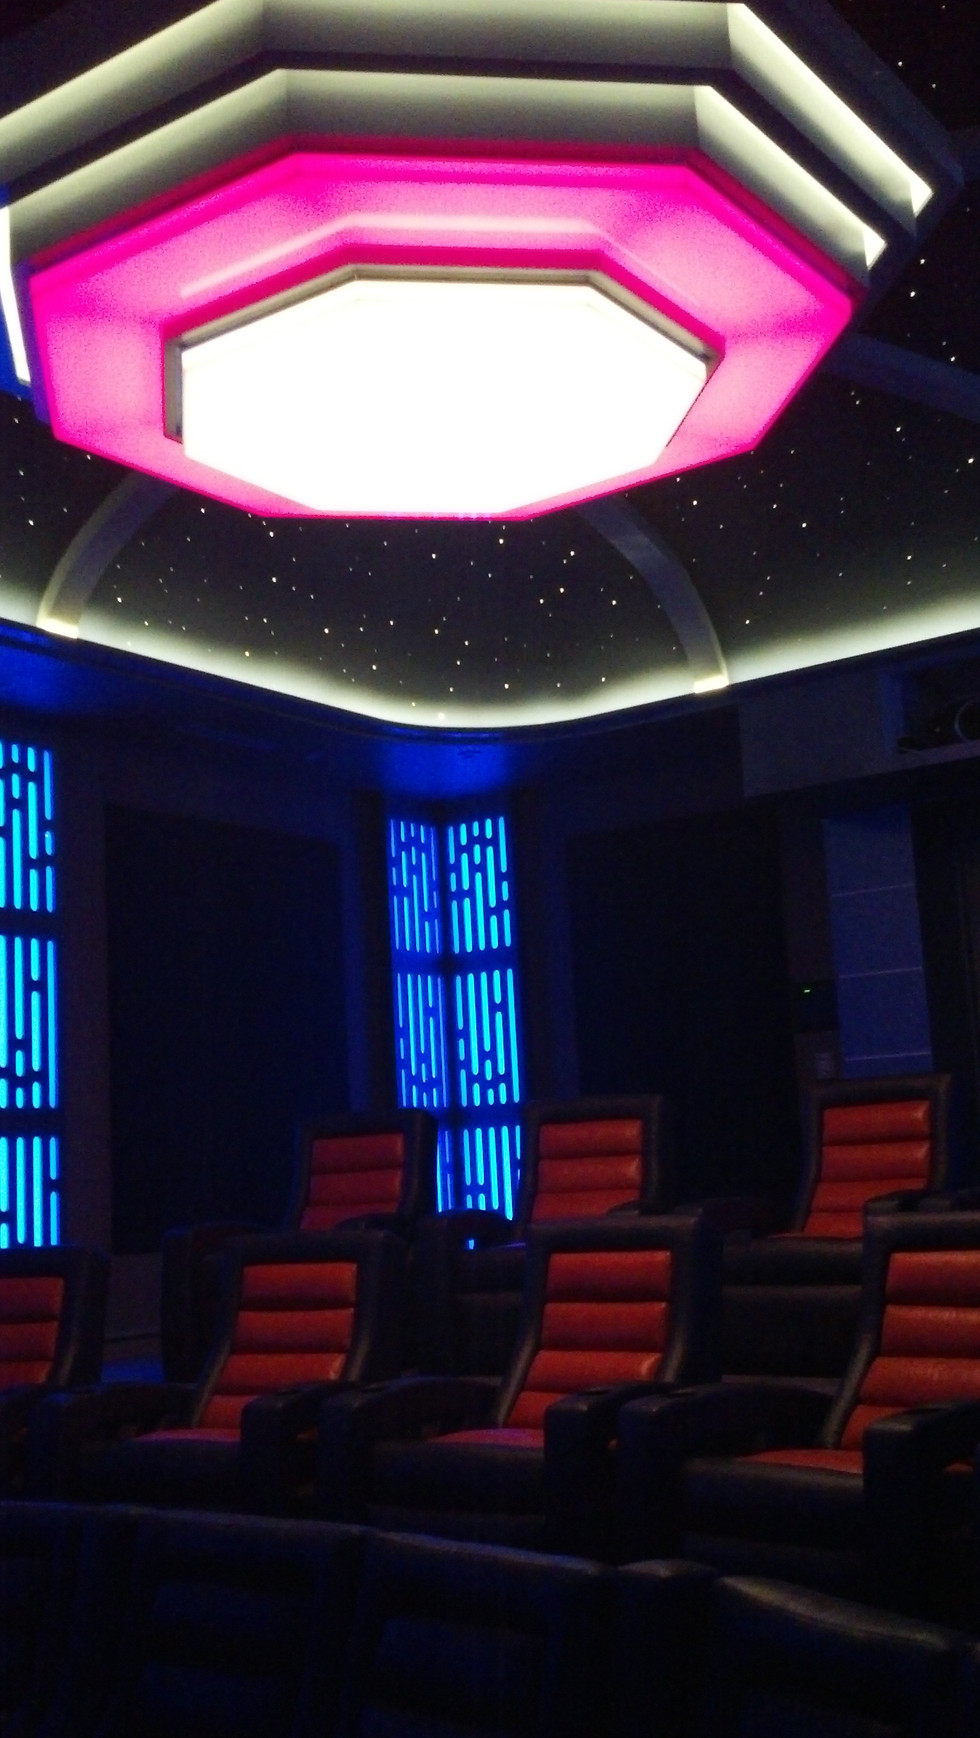 The Star Wars Theater Lit Up